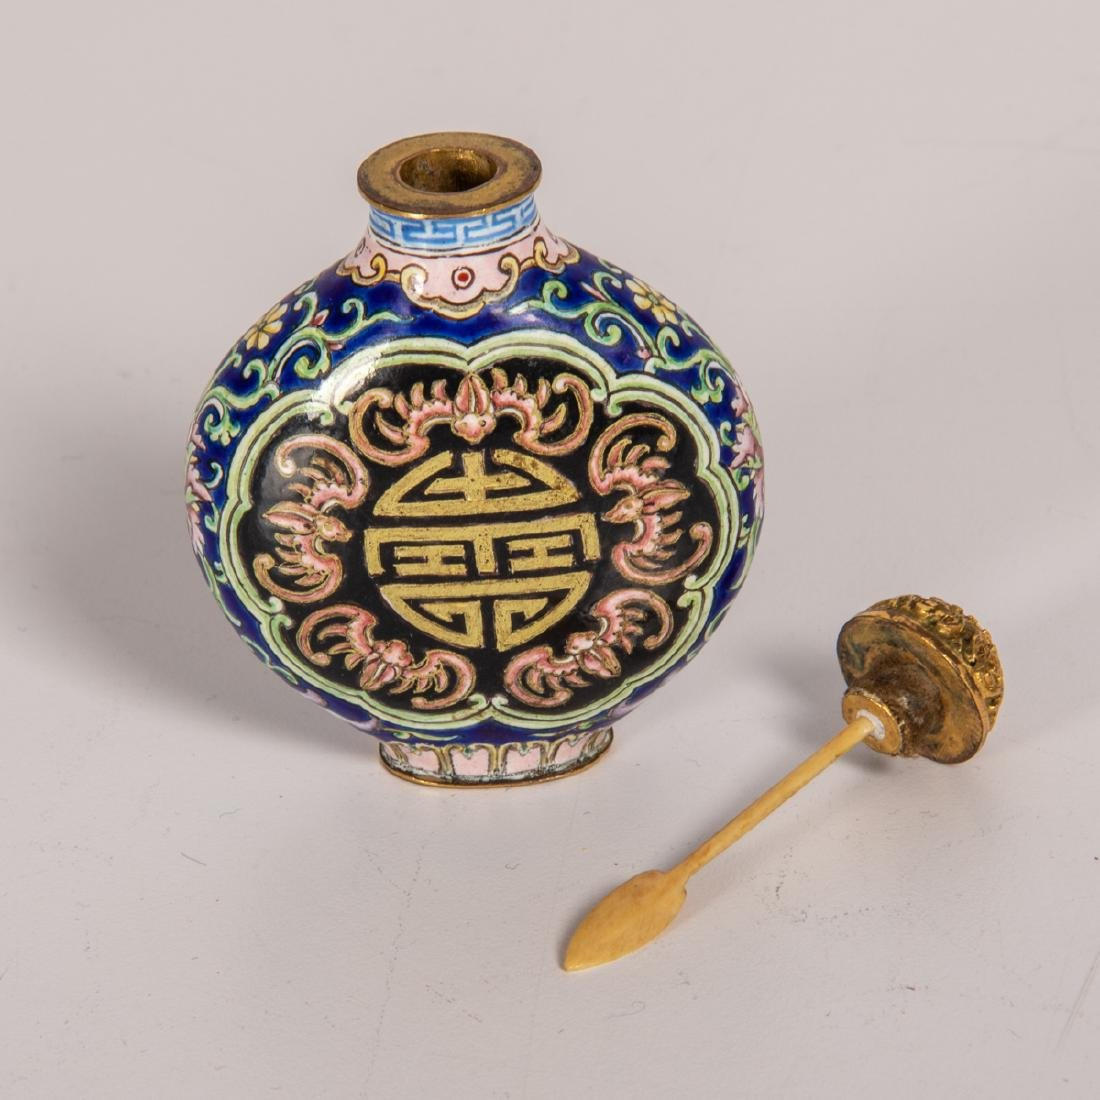 A Chinese Porcelain Enamel Snuff Bottle with Qianlong - 2